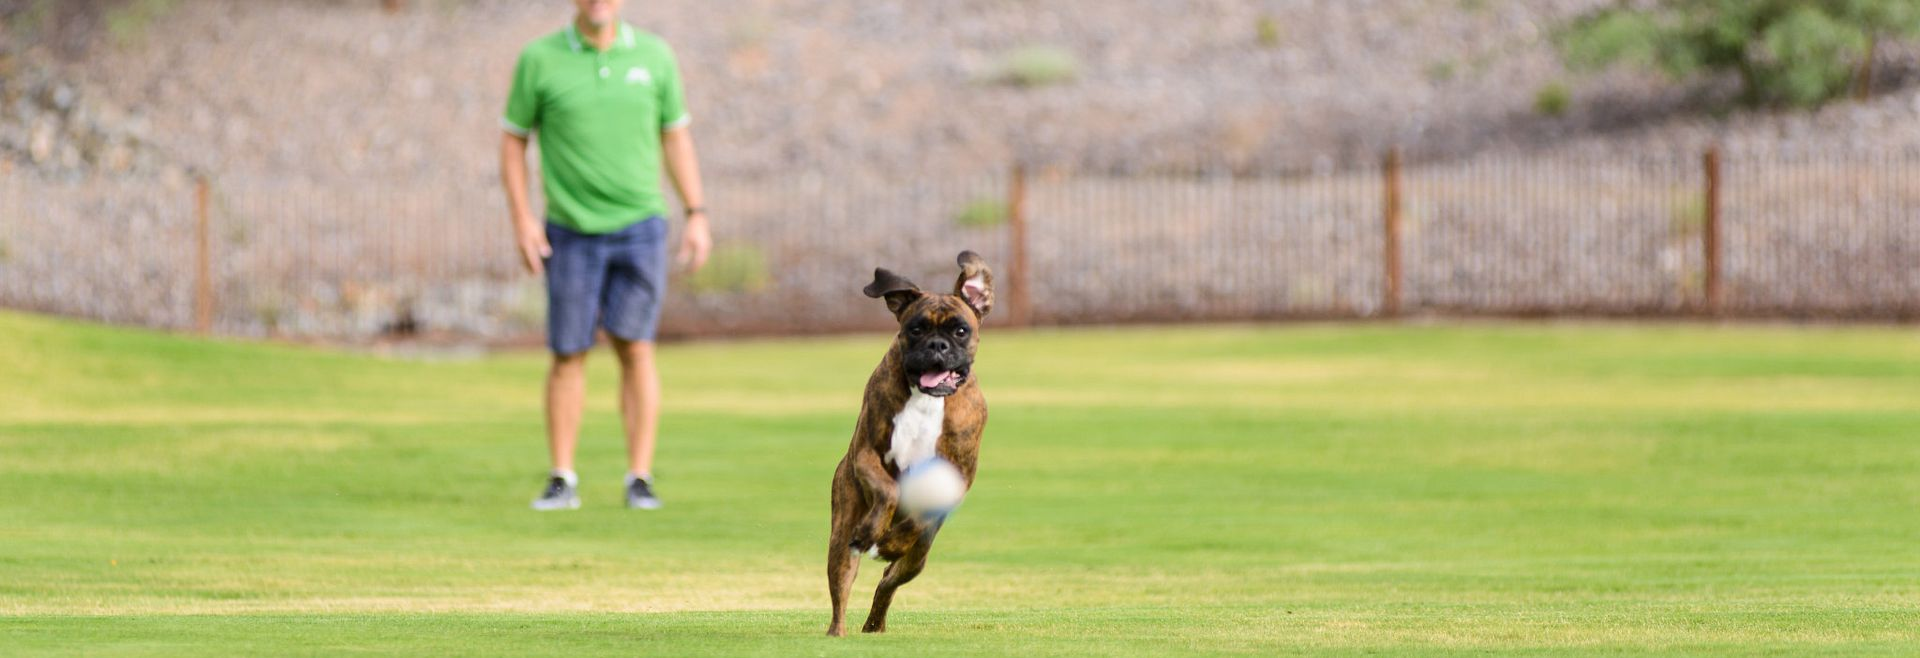 Boxer running after a ball that was thrown